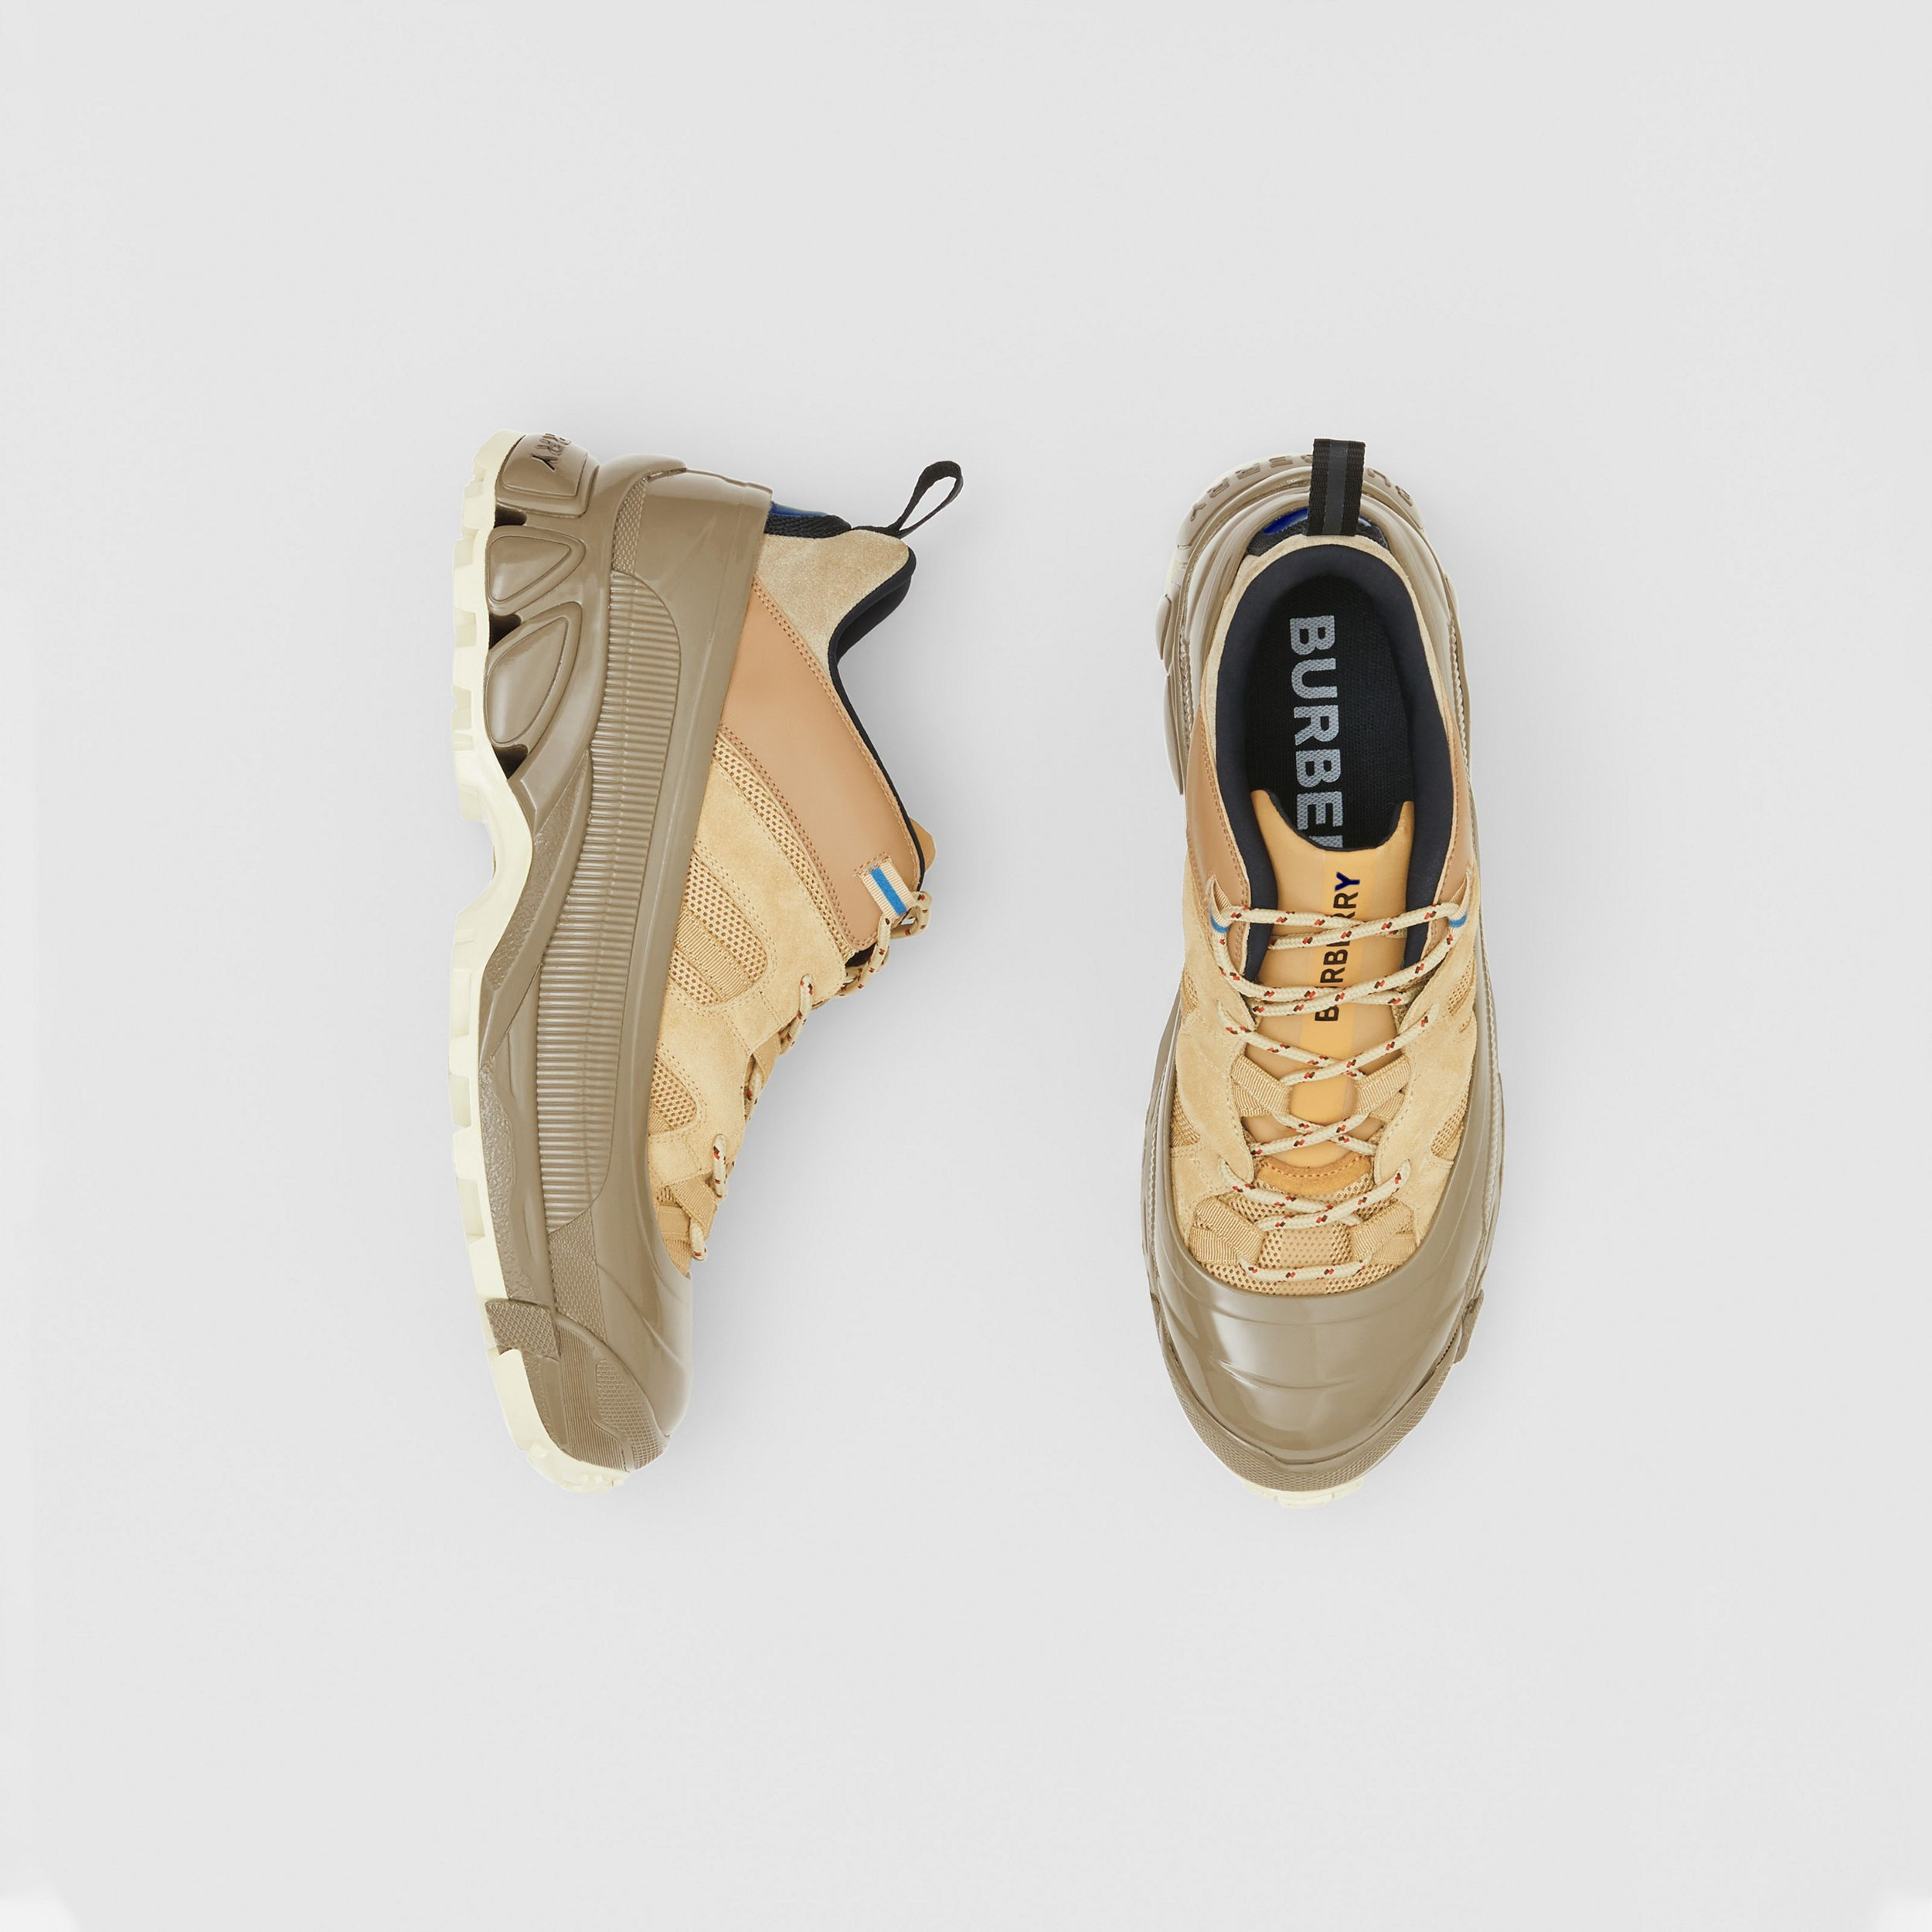 Suede, Mesh and Leather Arthur Sneakers in Beige | Burberry - 1